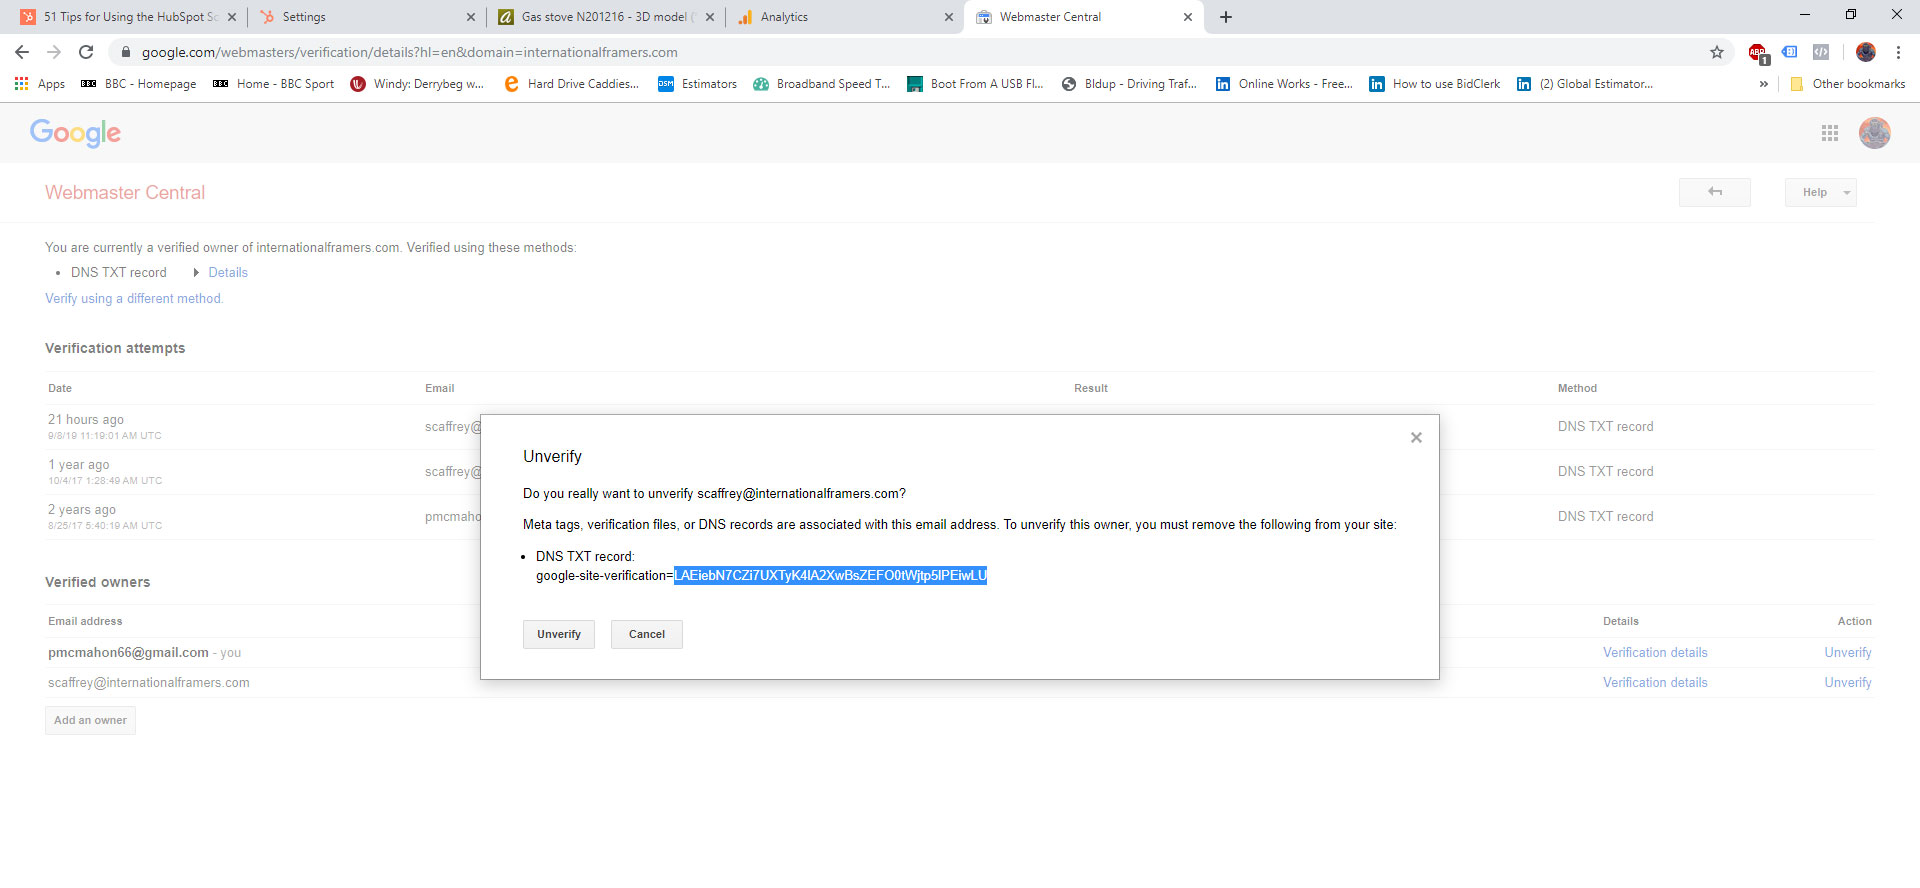 Japanese Hack - Search Console Help